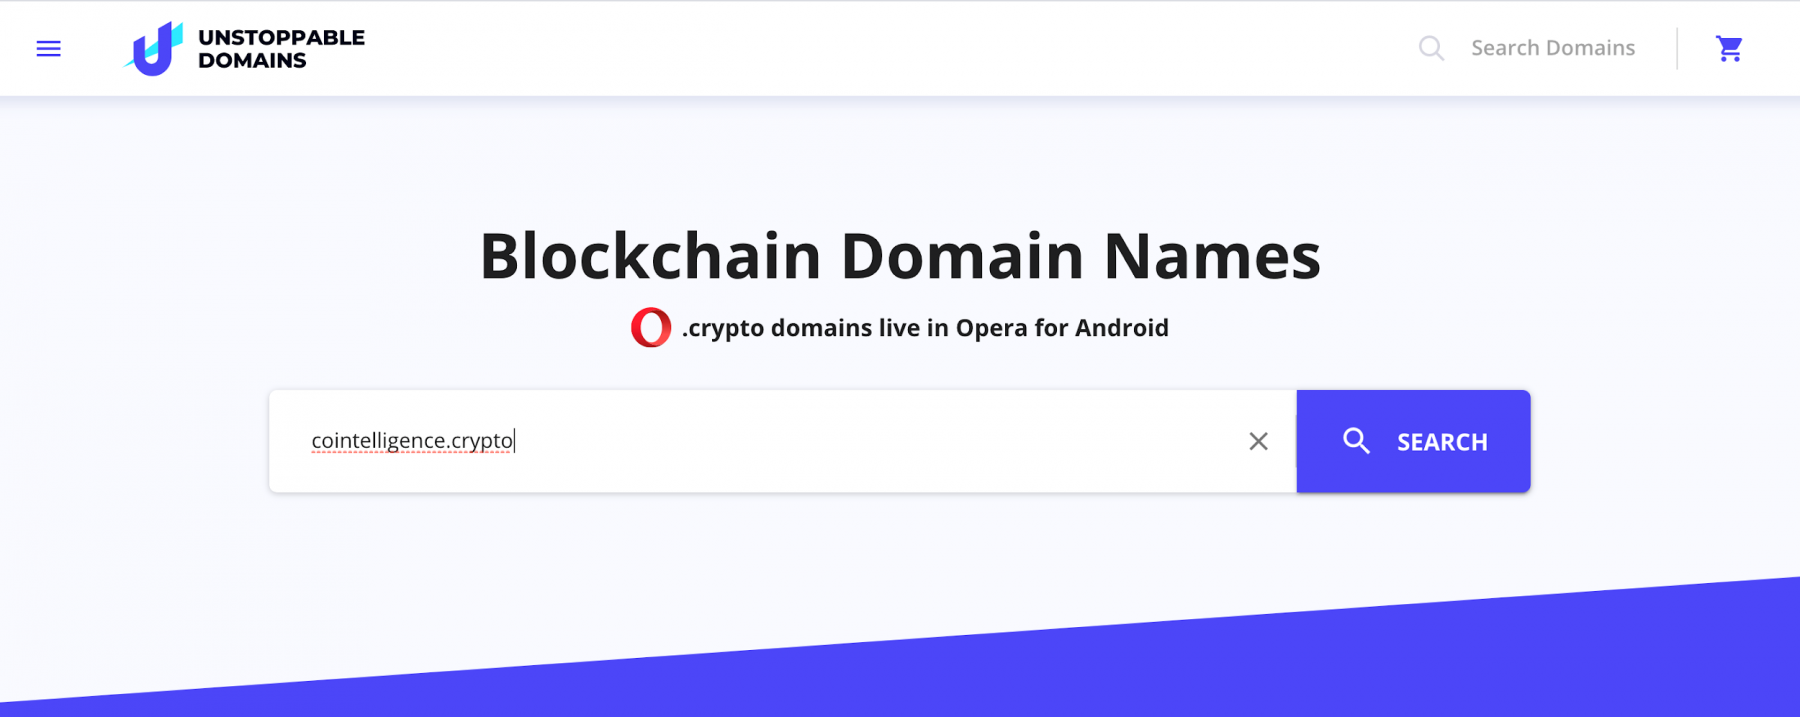 Setting up a blockchain domain